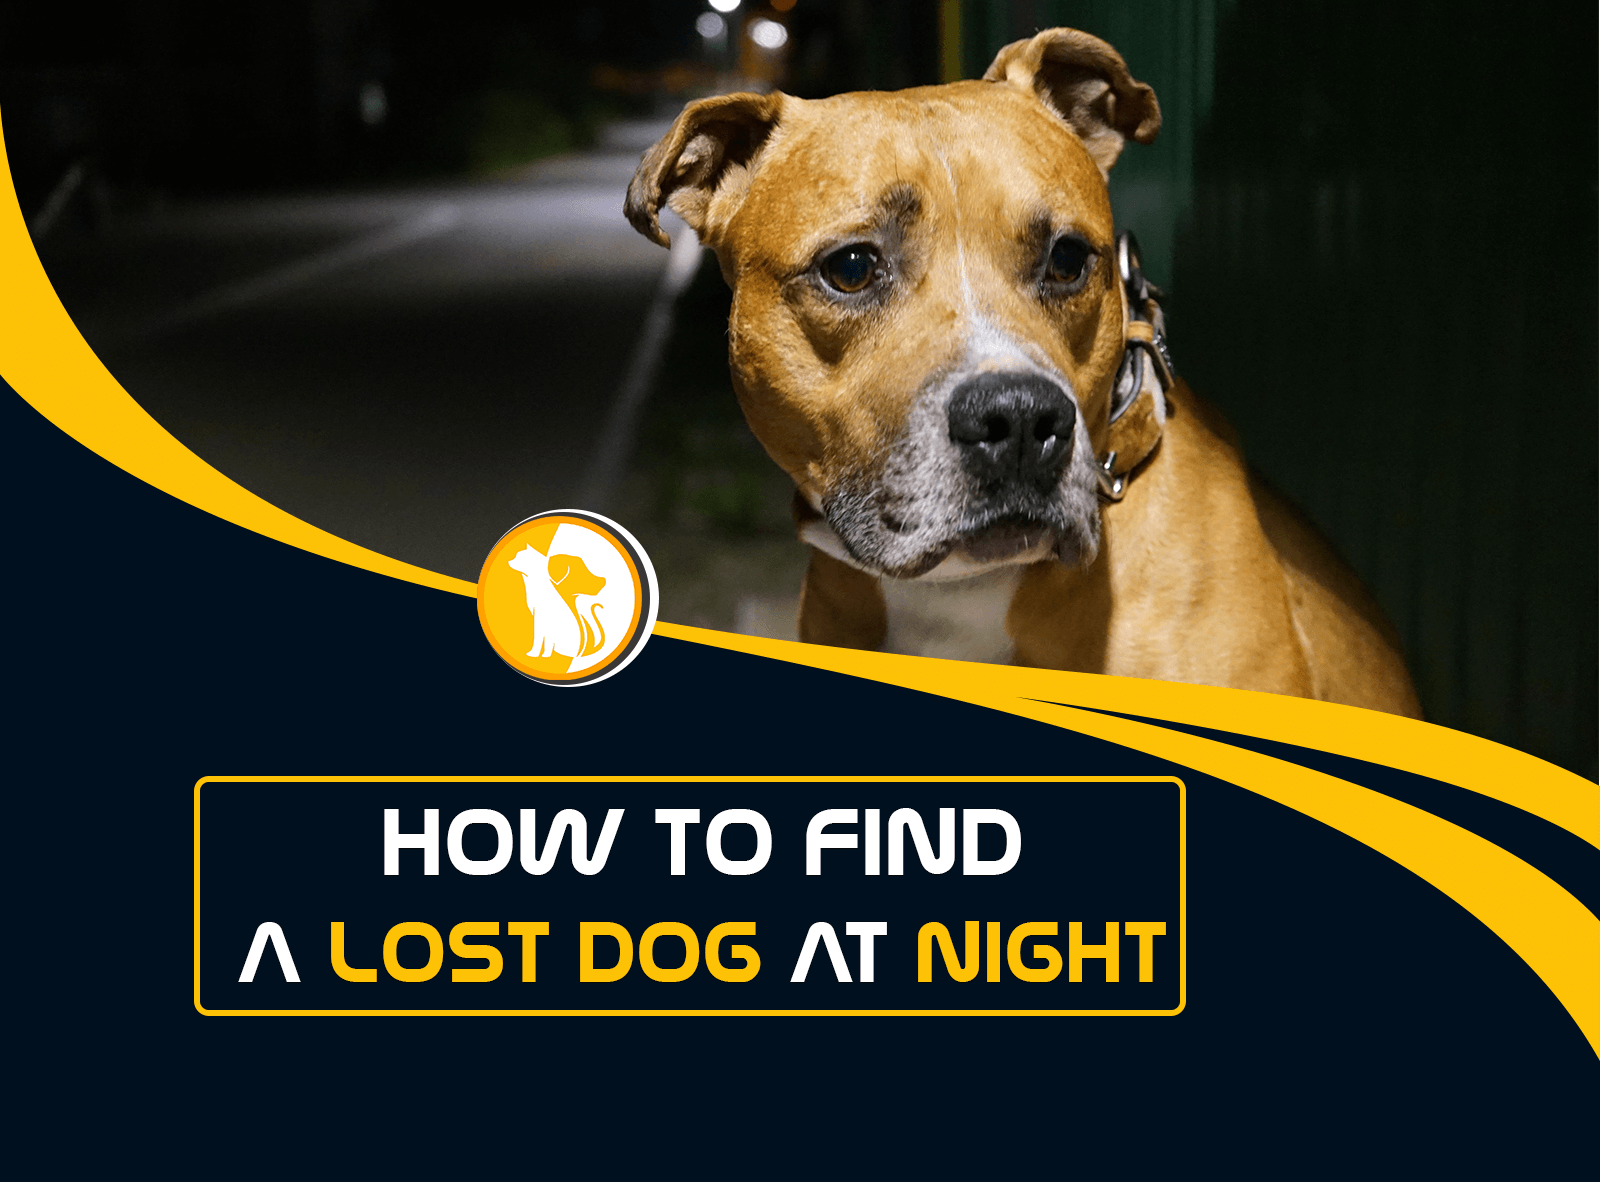 How to Find a Lost Dog at Night?